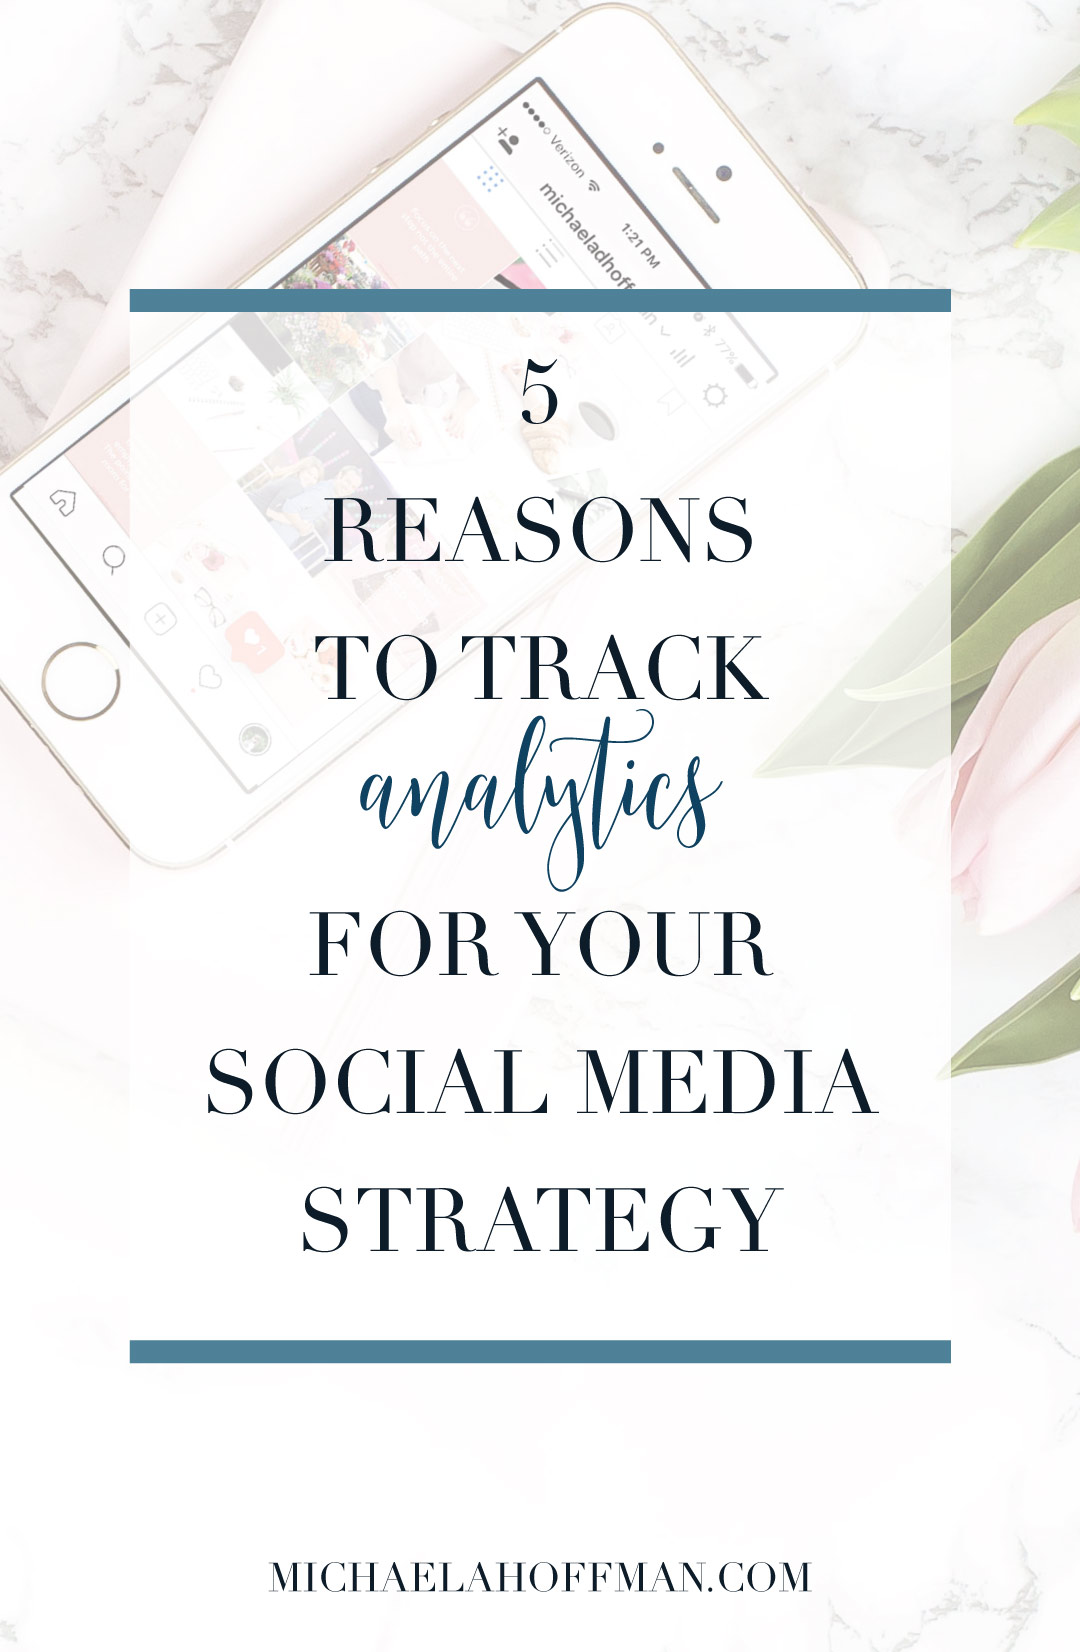 5 reasons to track analytics for your social media strategy